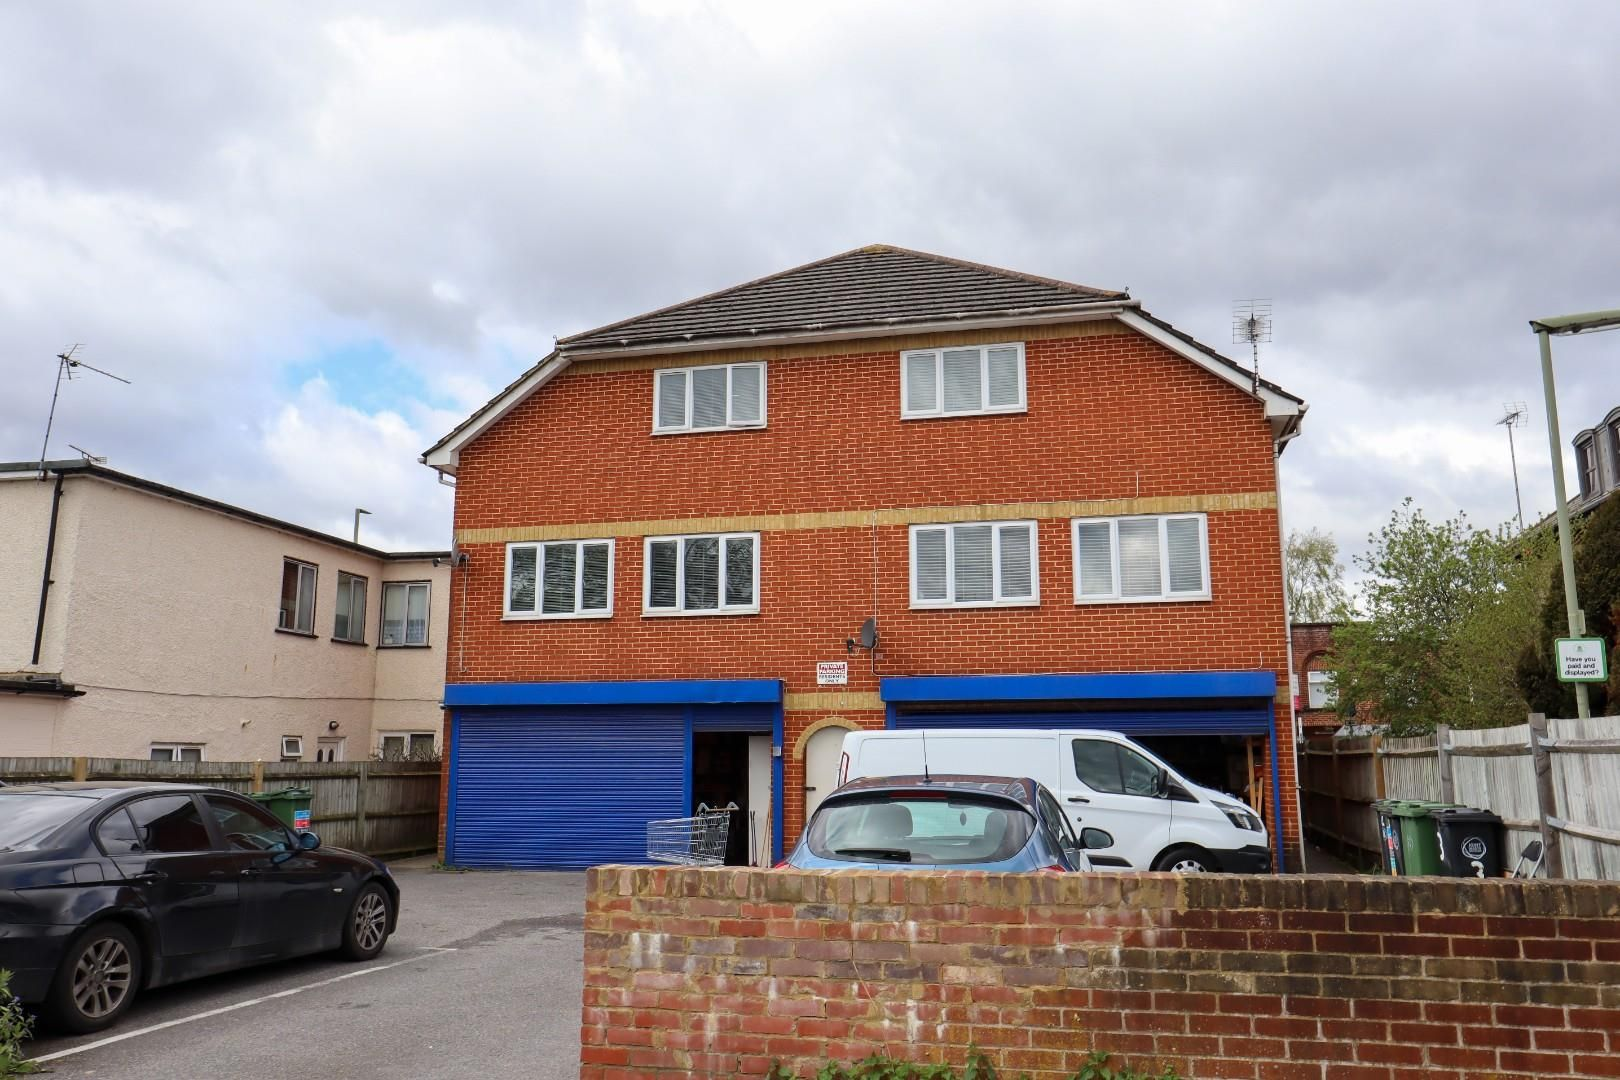 2 bed duplex for sale - Property Image 1